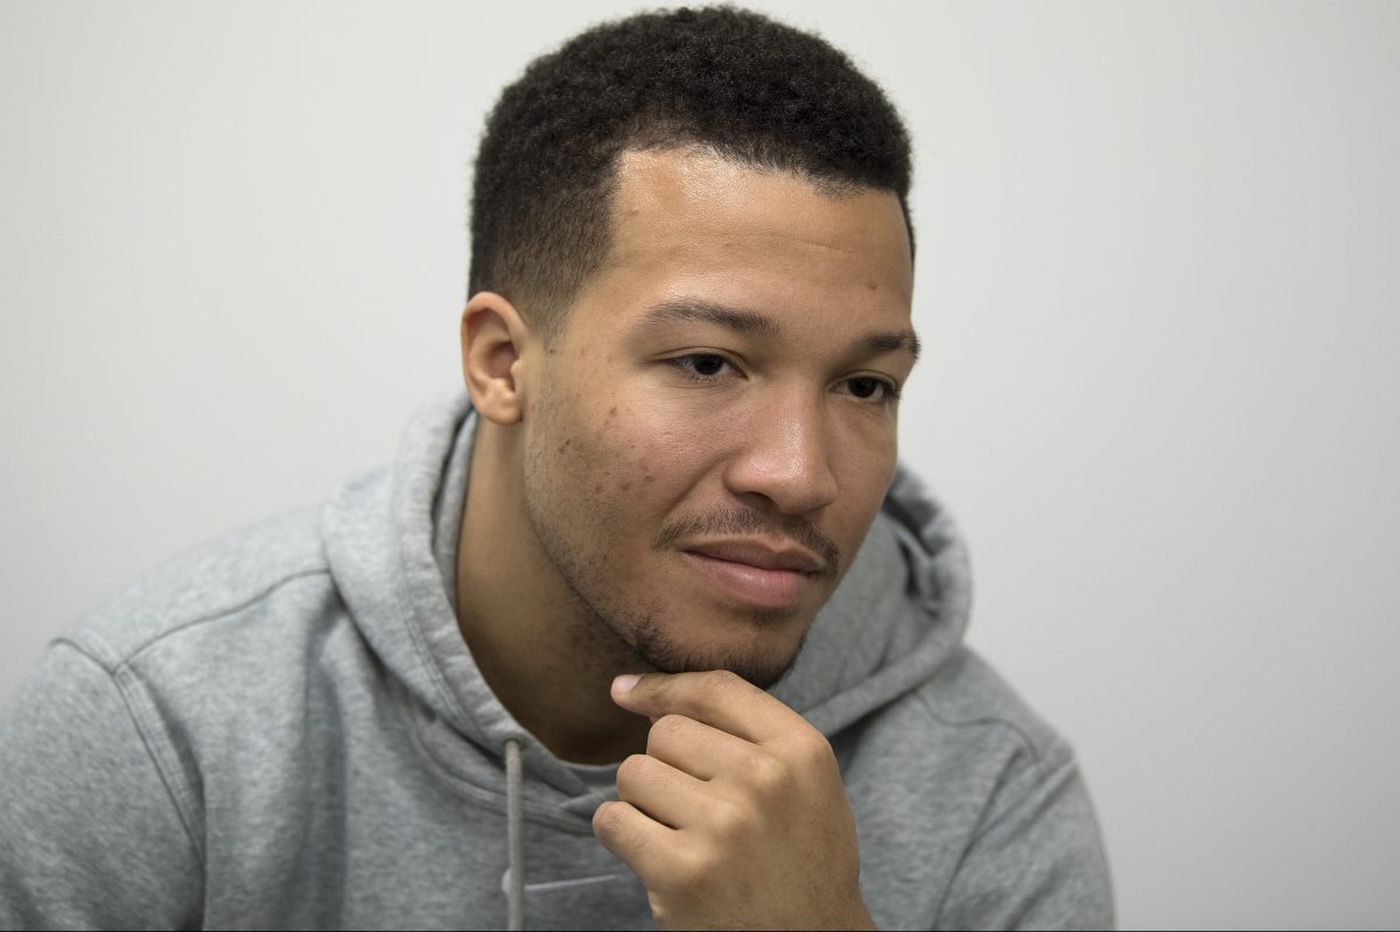 Jalen Brunson leads Villanova basketball players to March Madness success on court and in classroom